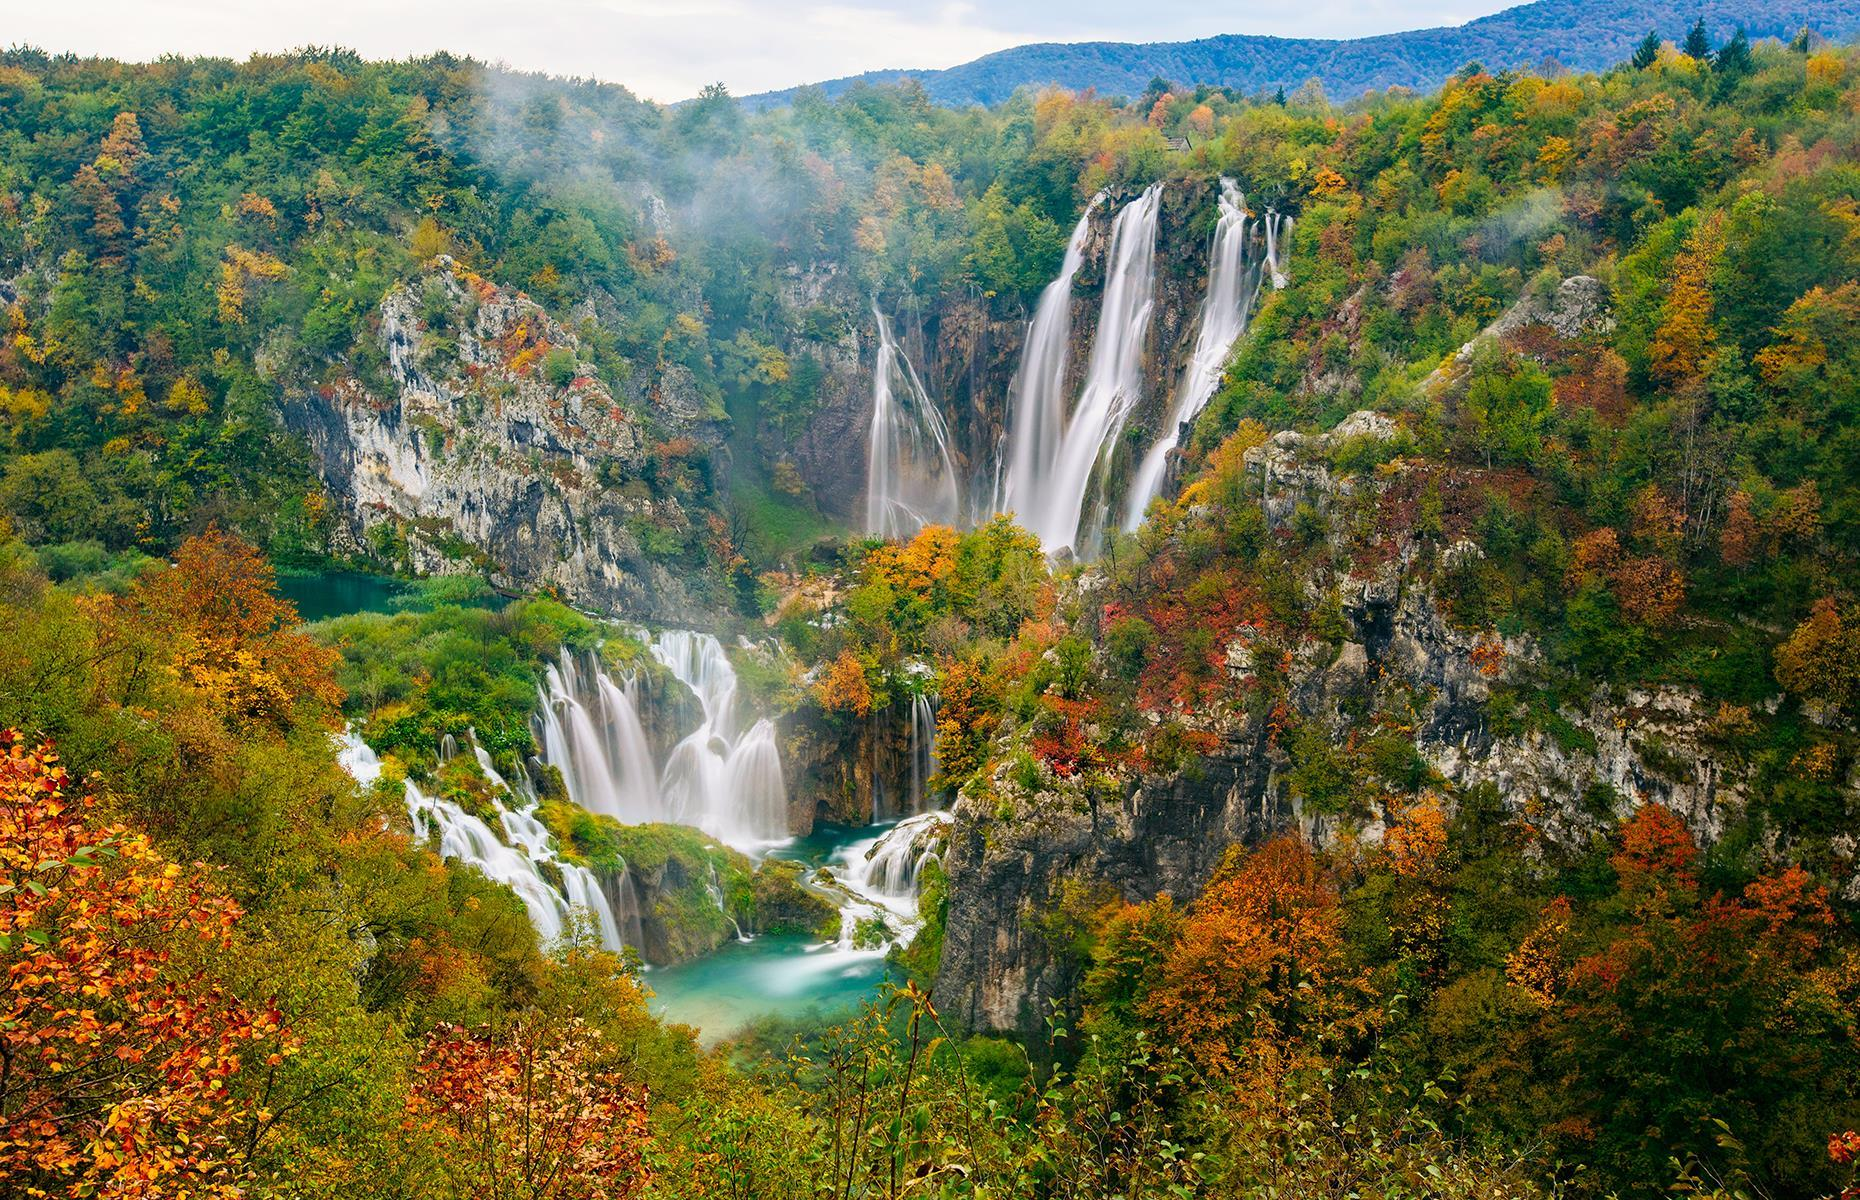 Slide 9 of 41: Covering almost 115 square miles (298sq km), Plitvice Lakes National Park is found near the Bosnia and Herzegovina border, two hours south by car from Zagreb in Croatia. The park, founded in 1949, is famous for its collection of 16 crystal clear, color-changing lakes – they morph between shades of green and blue due to their high mineral content – plus over 90 waterfalls. It's a truly magical landscape. Here are stunning images of Europe's best national parks.